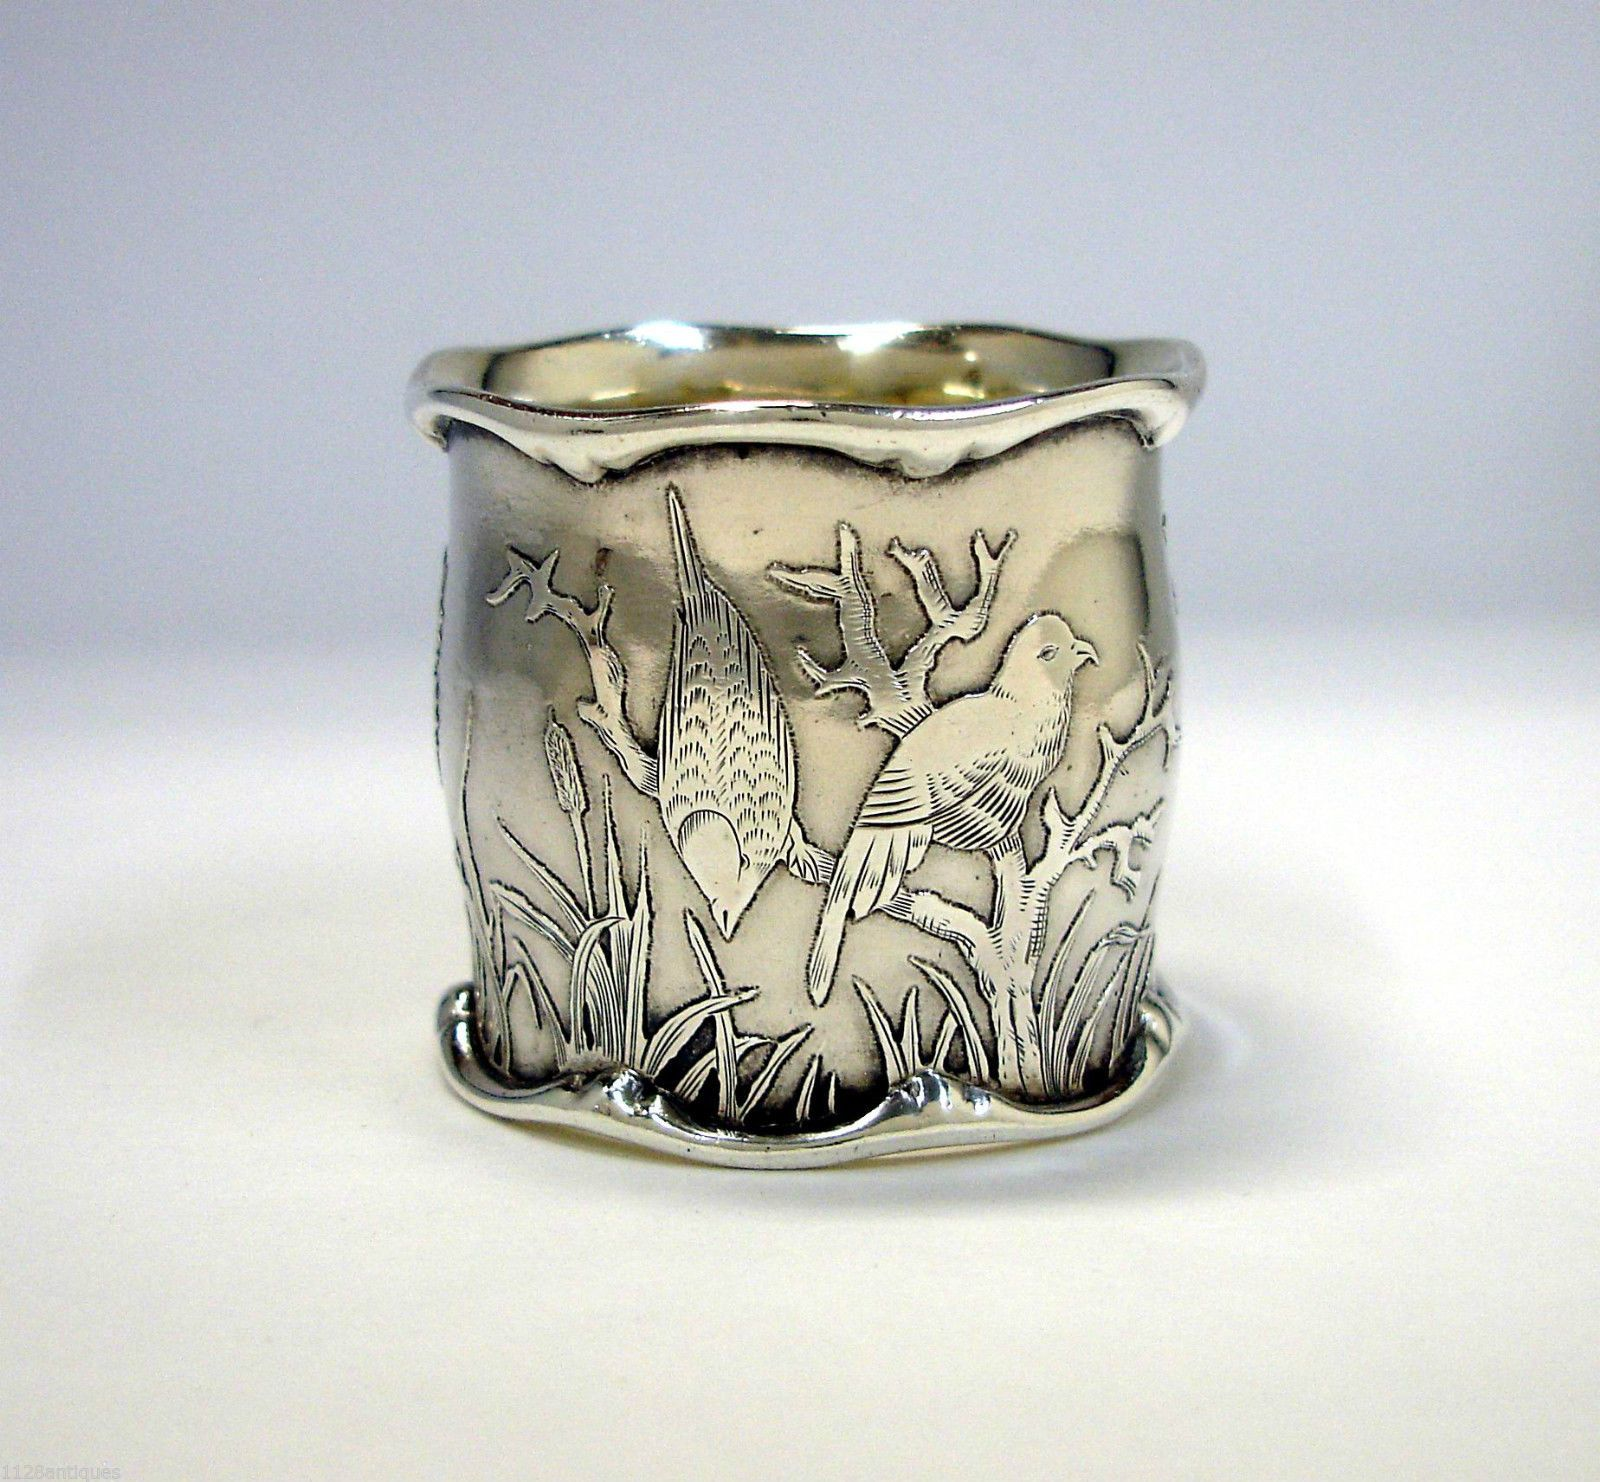 Magnificent Antique Etched Engraved Sterling Silver Napkin Ring Birds Flowers Ebay Rings